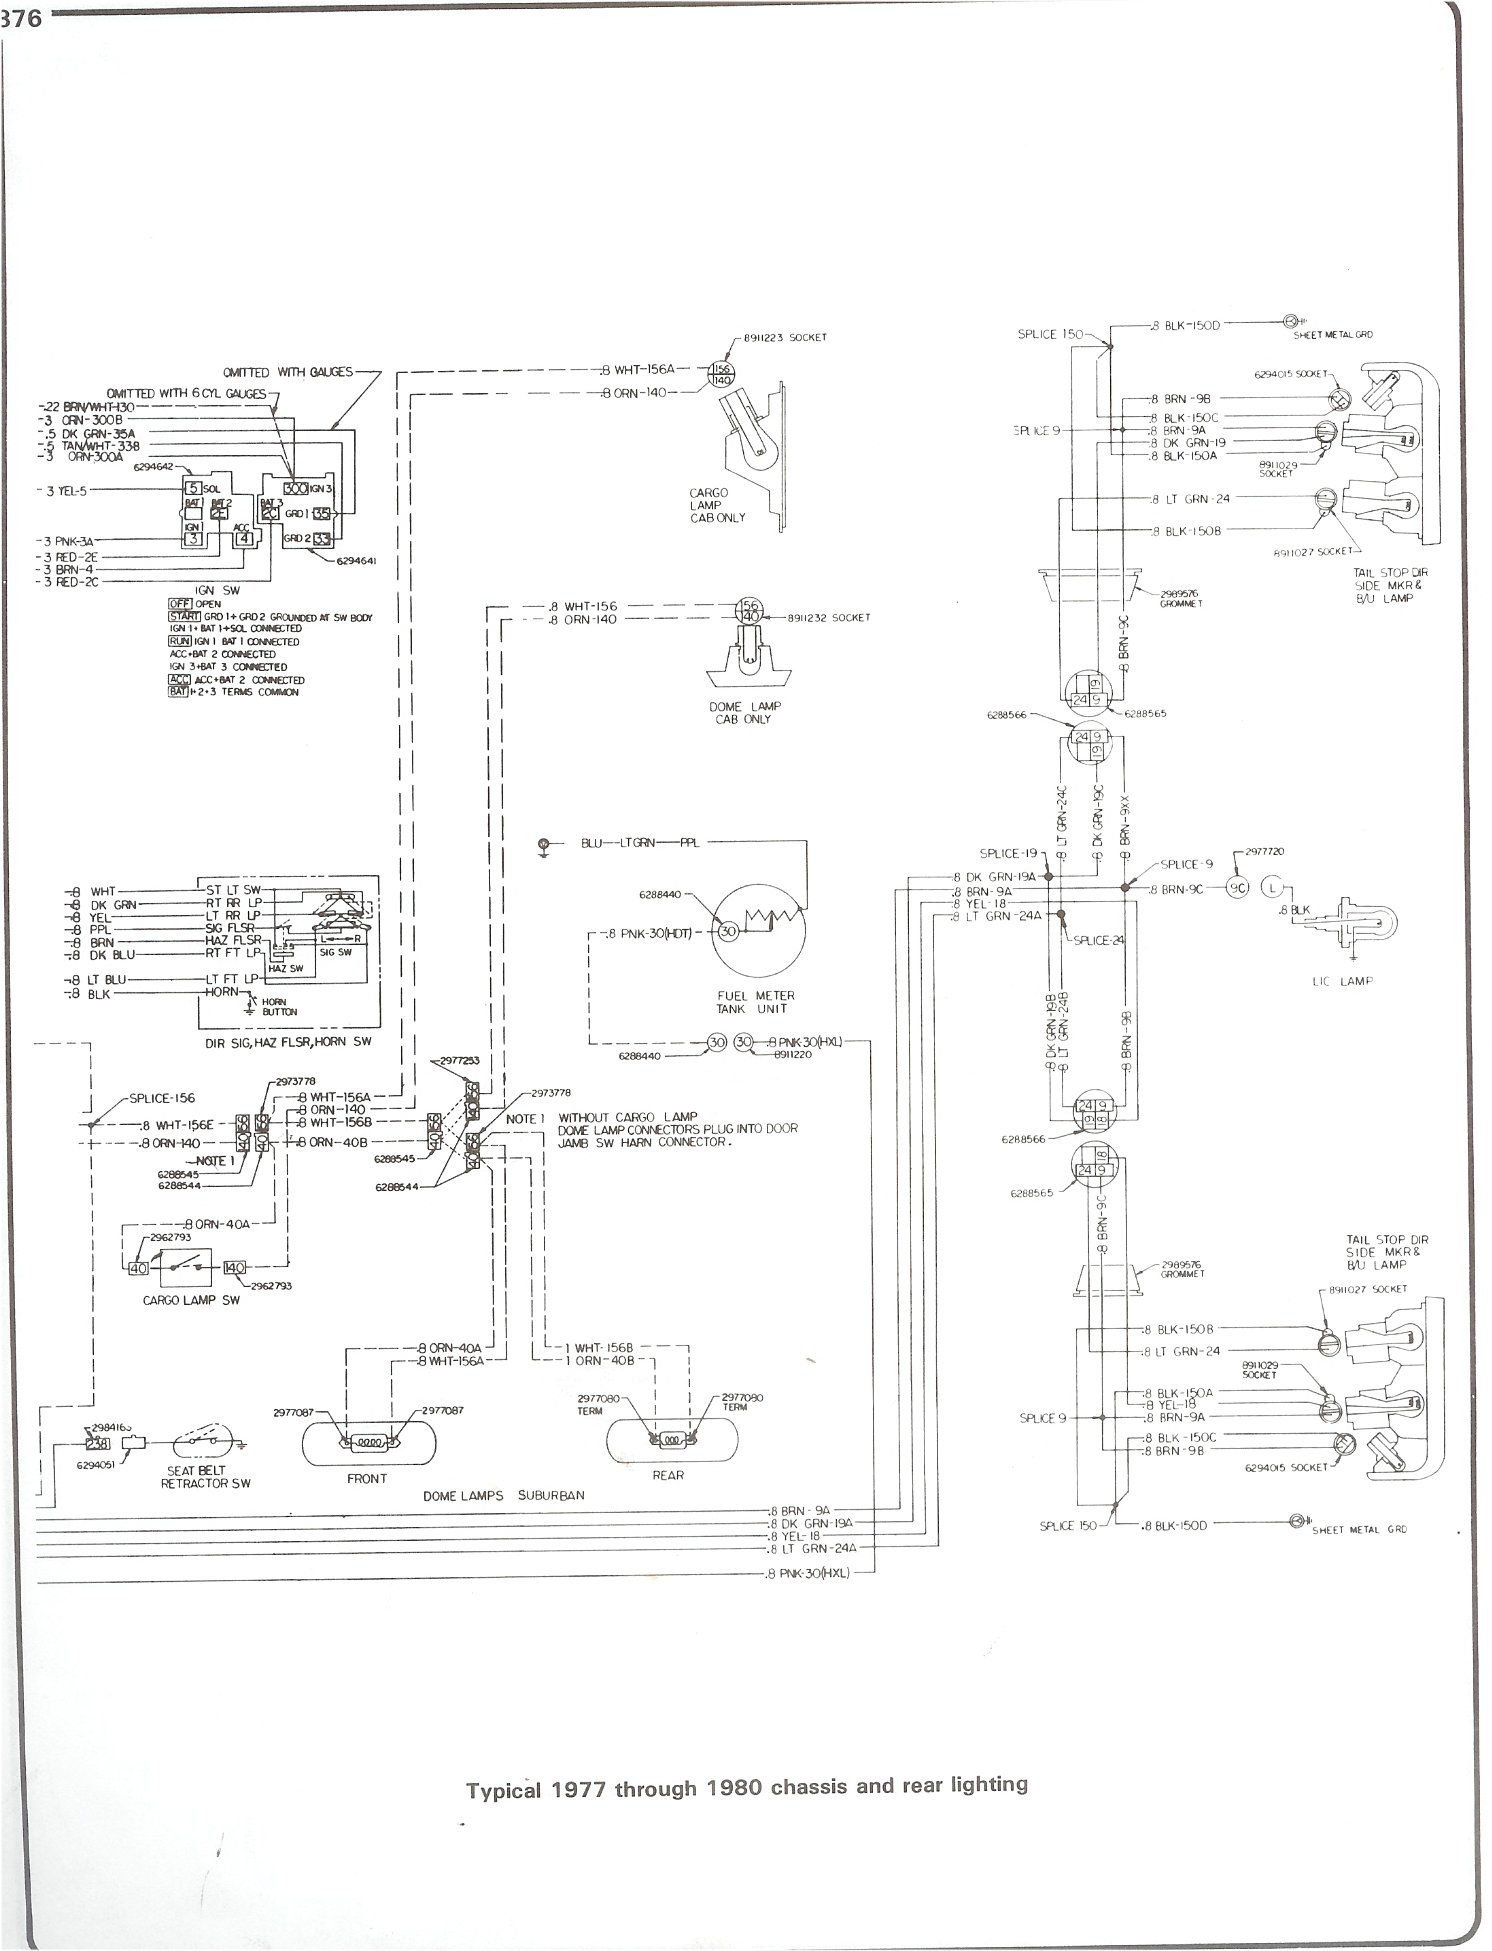 77 80_chass_rr_light need help with ignition switch wiring 87 chevy truck wiring diagram at creativeand.co